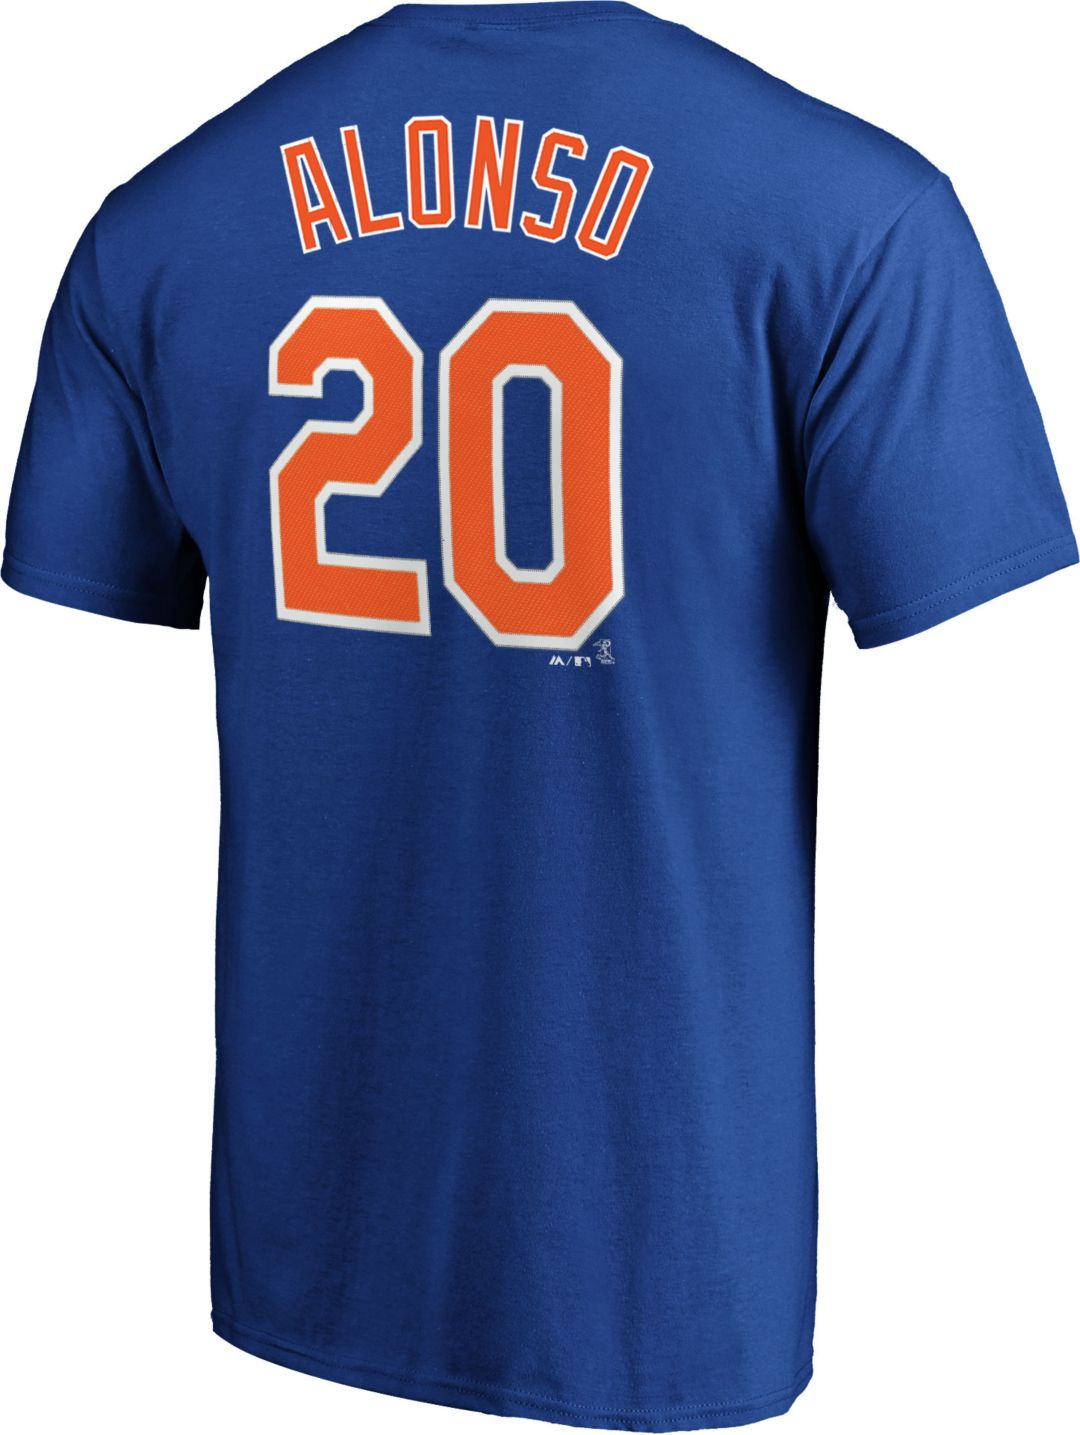 0afdcca3 Majestic Men's New York Mets Pete Alonso #20 Royal T-Shirt   DICK'S ...